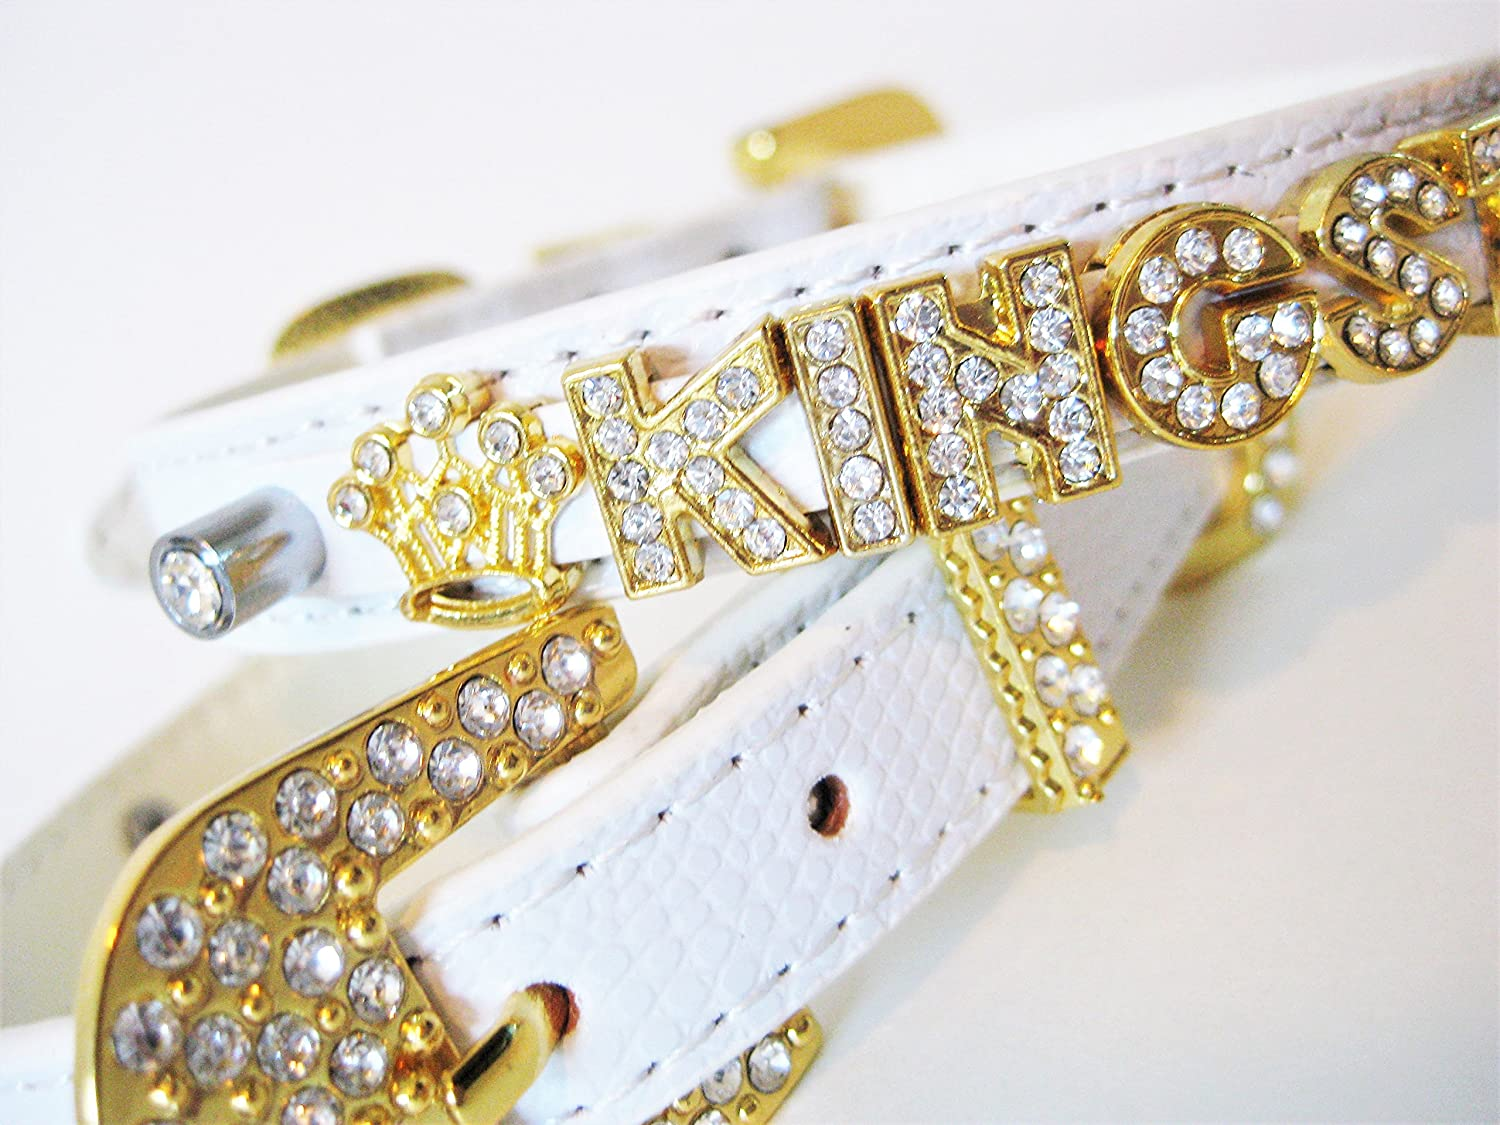 White Personalized Dog Collar | Bling Dog Collar | XS S M L